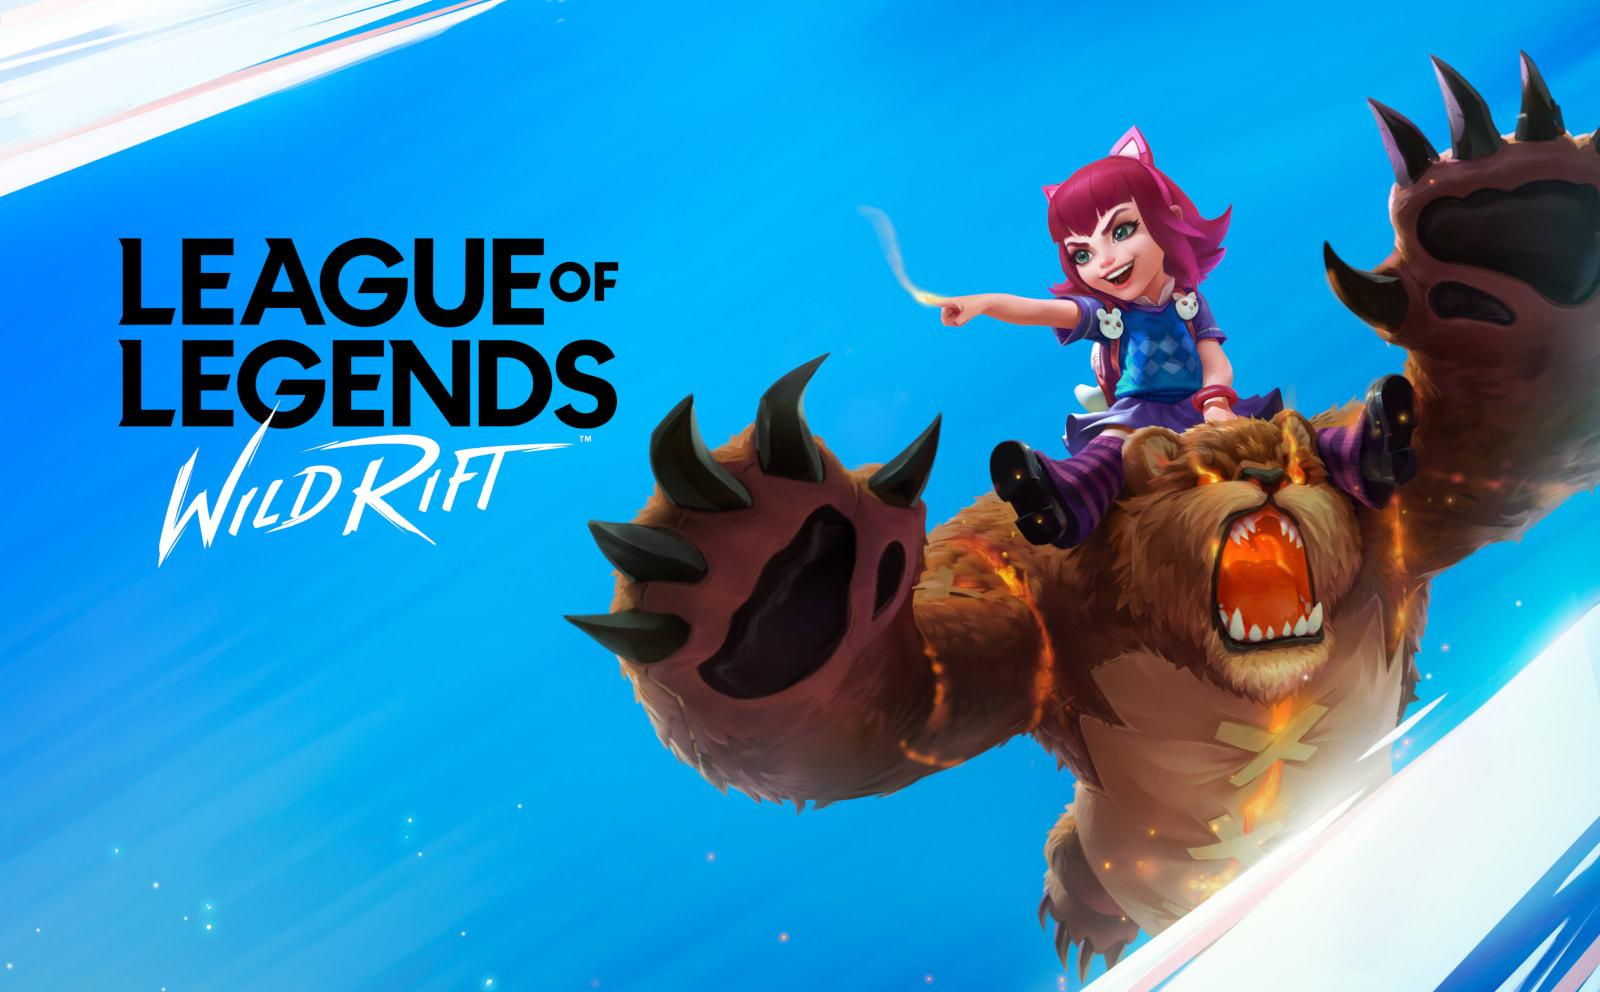 League Of Legends Wild Rift Will Land On Mobile And Consoles In 2020 Engadget